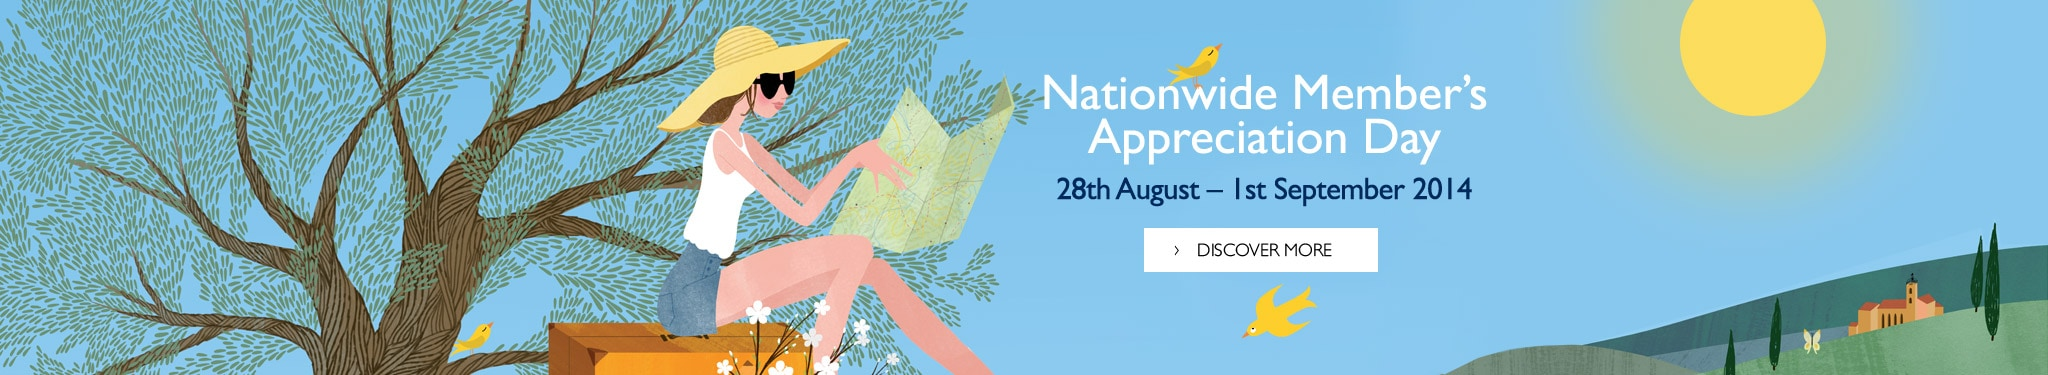 Nationwide Member's Appreciation Day